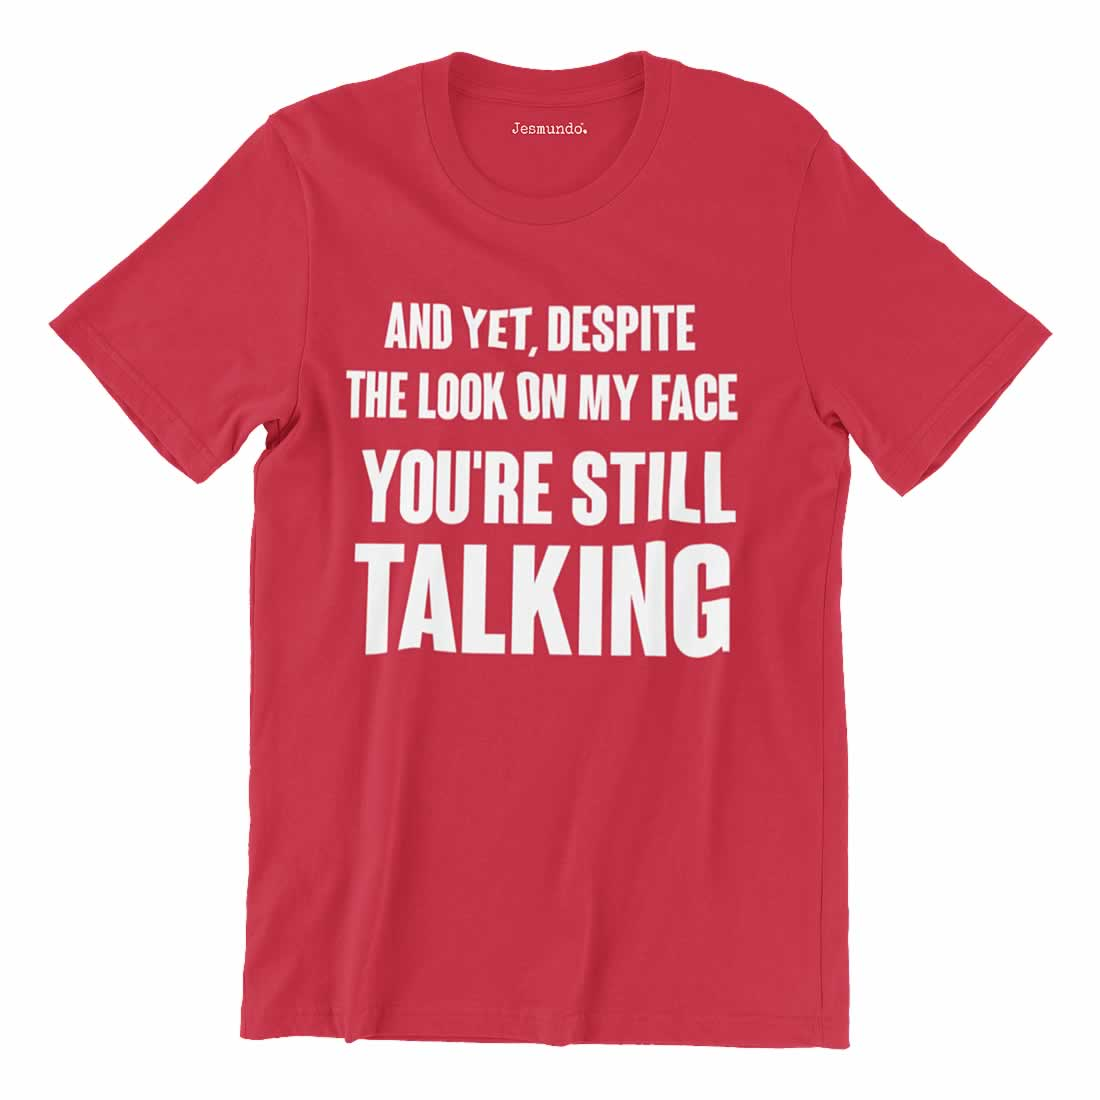 Despite The look on my face you're still talking t-shirt